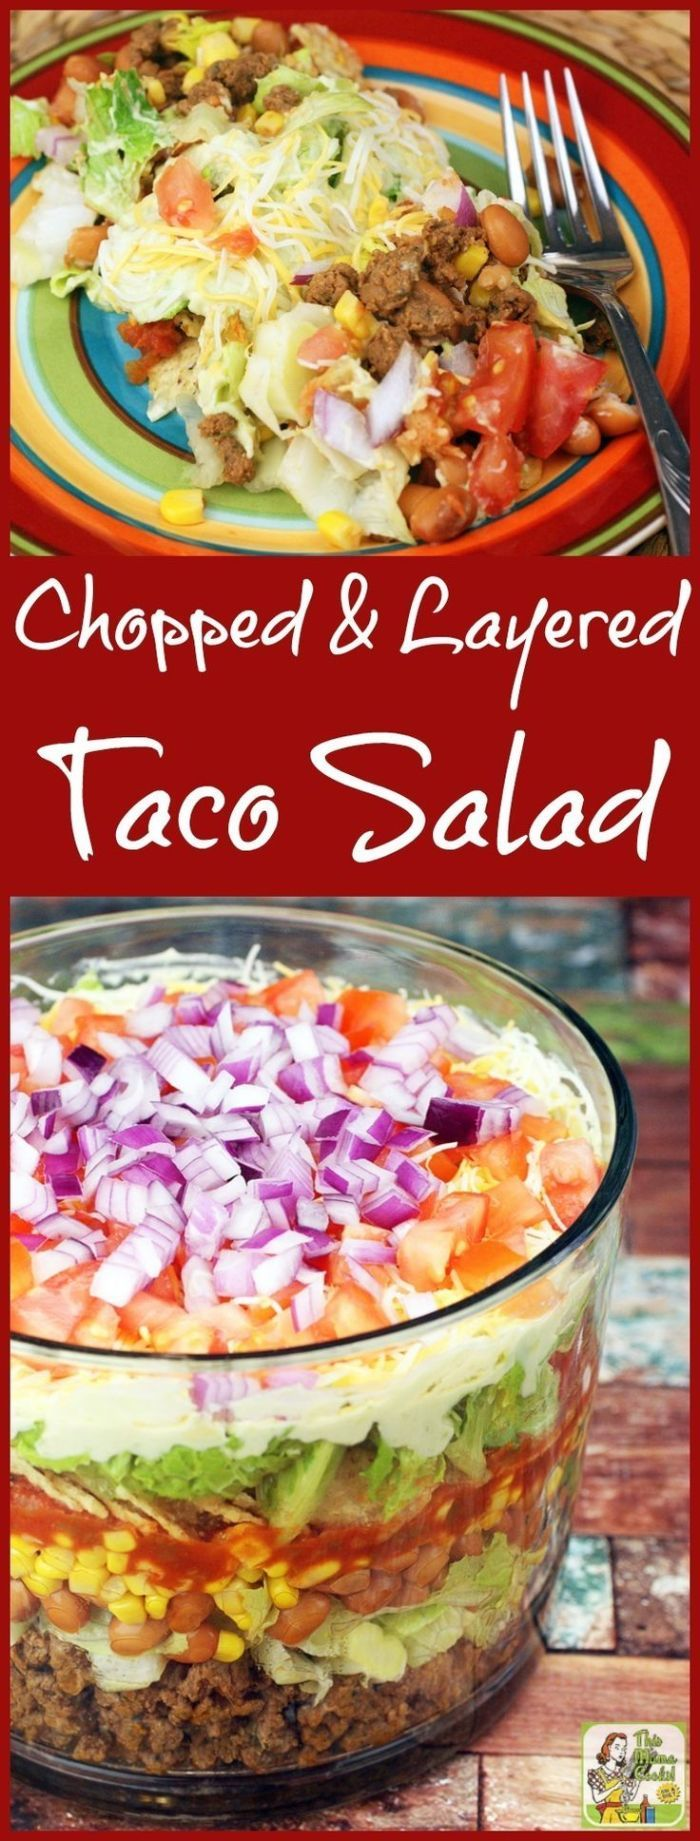 Chopped & Layered Taco Salad